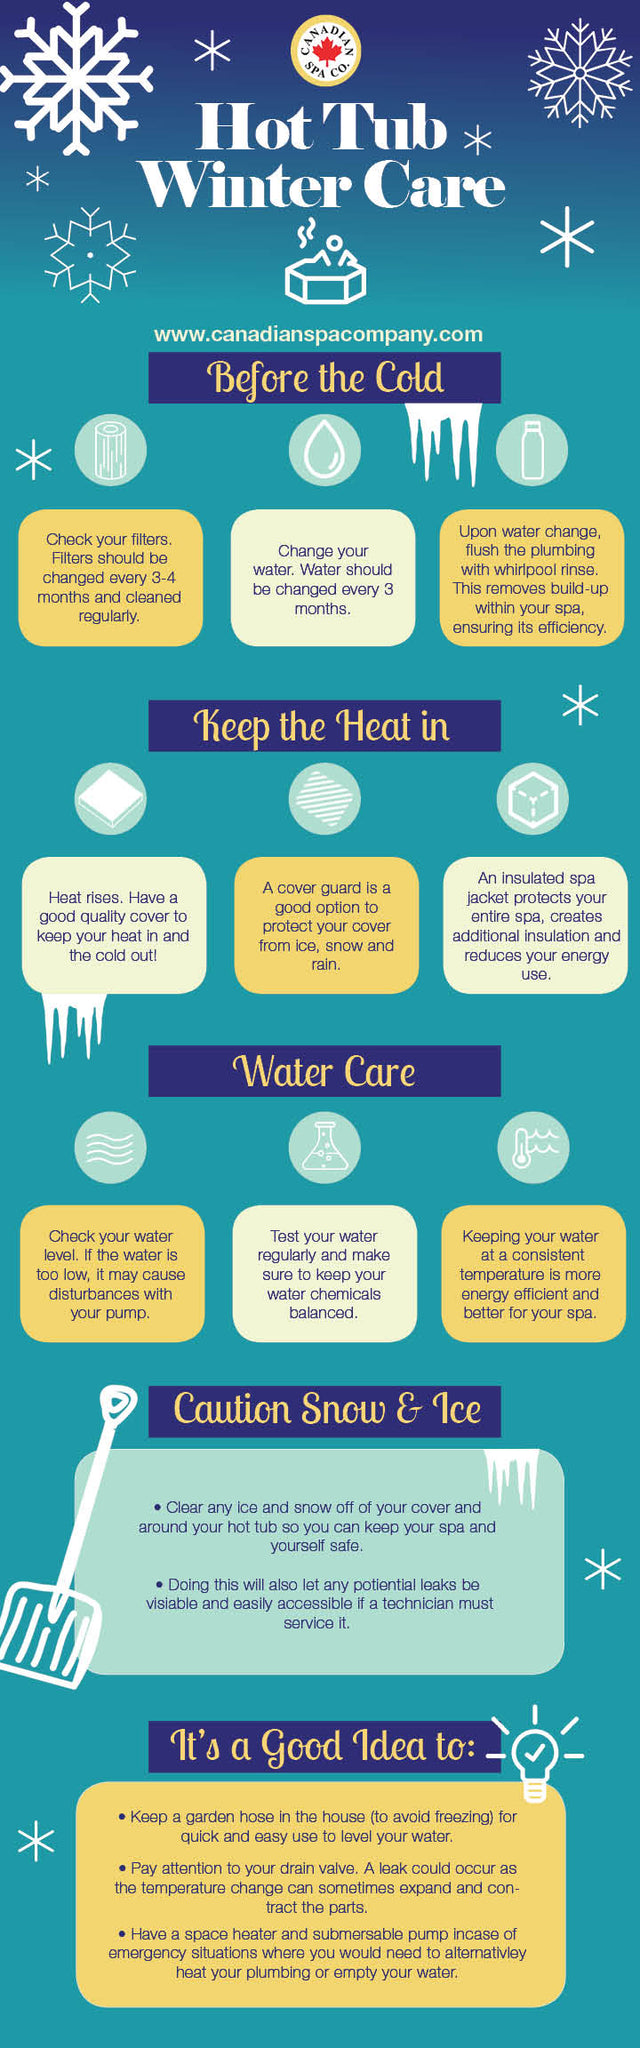 Winter Care Infographic